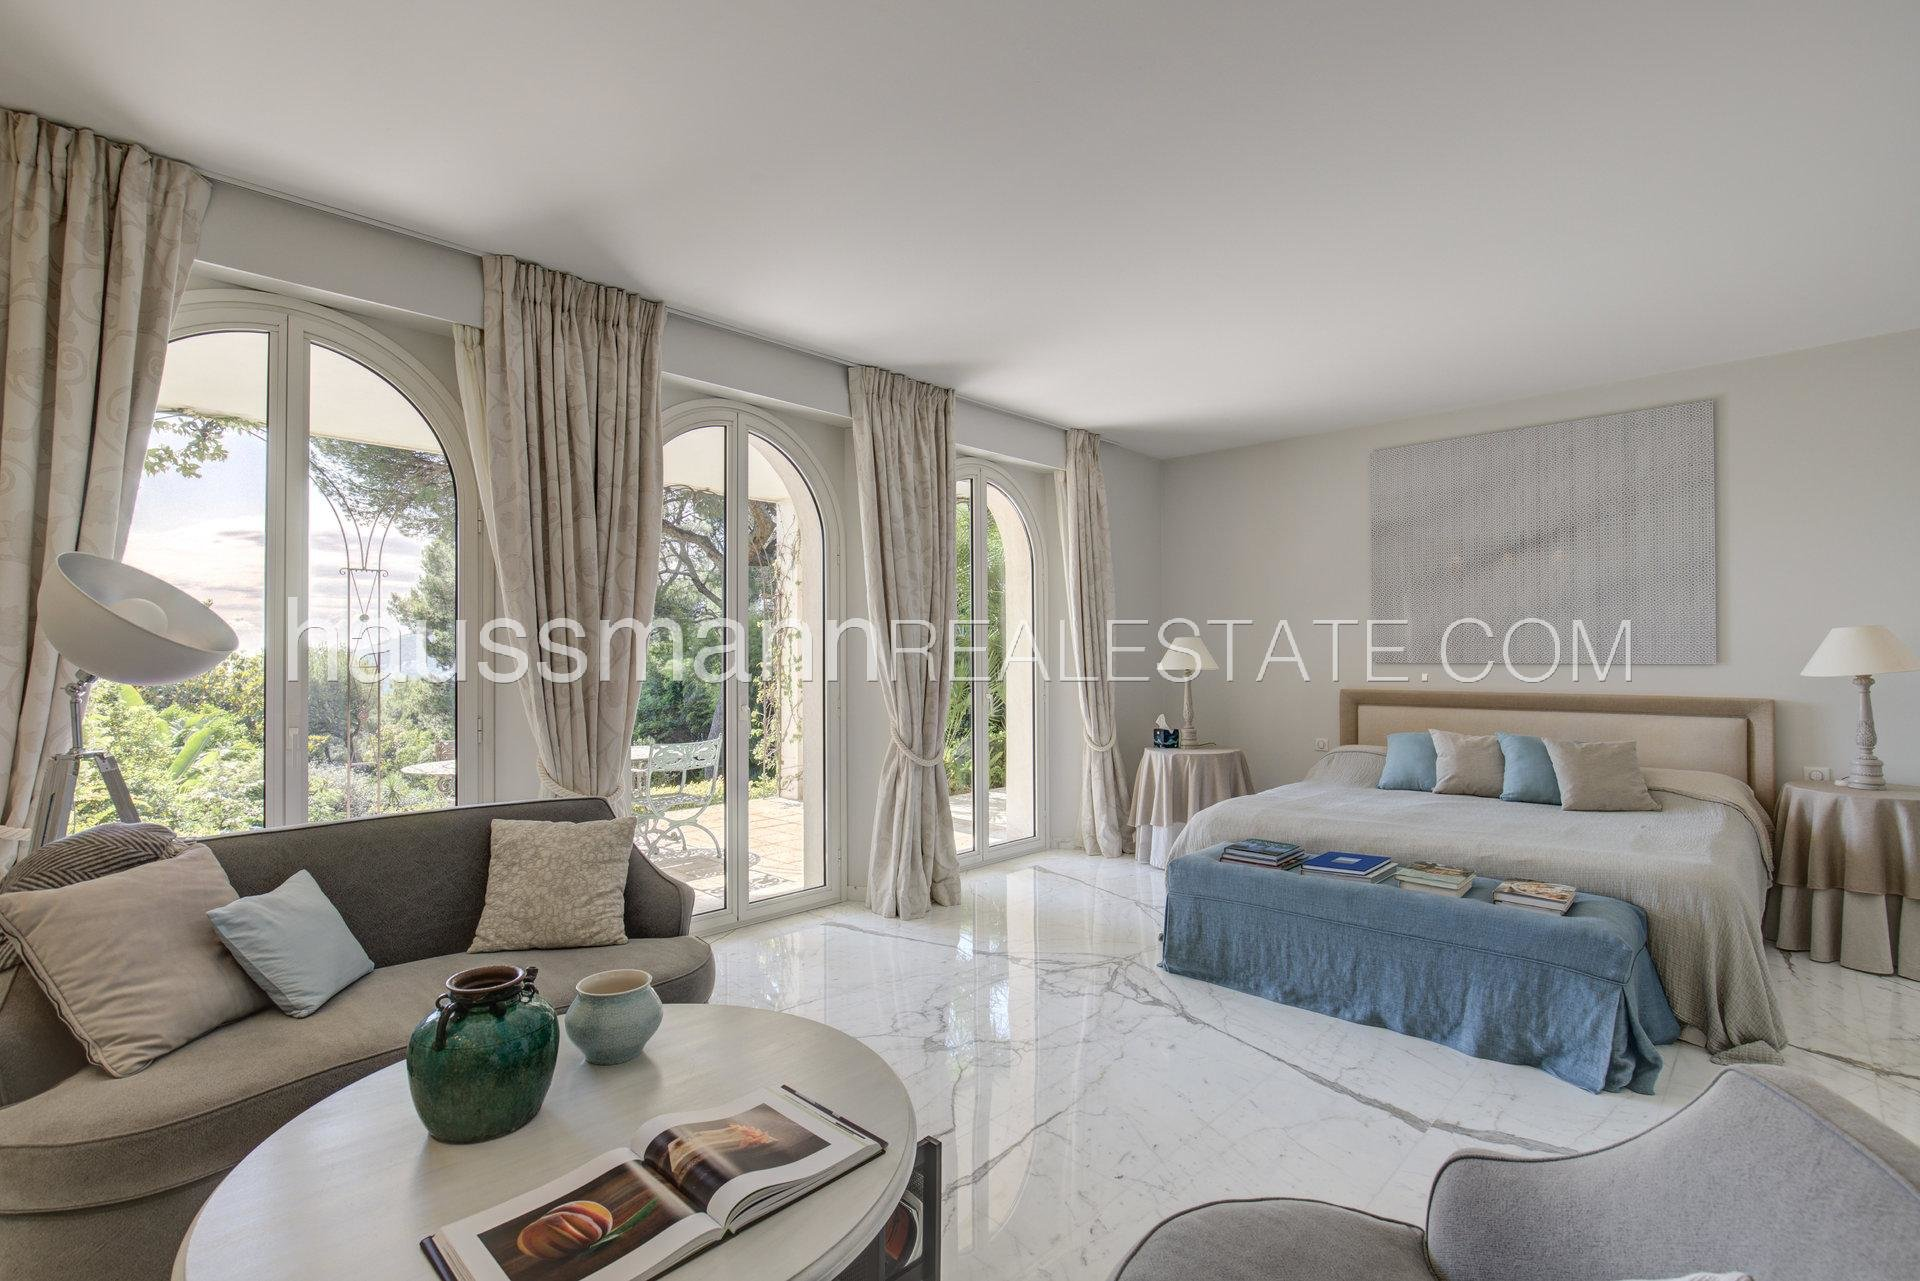 Rental Villa Saint-Jean-Cap-Ferrat Magnificient property with privacy and panoramic sea view